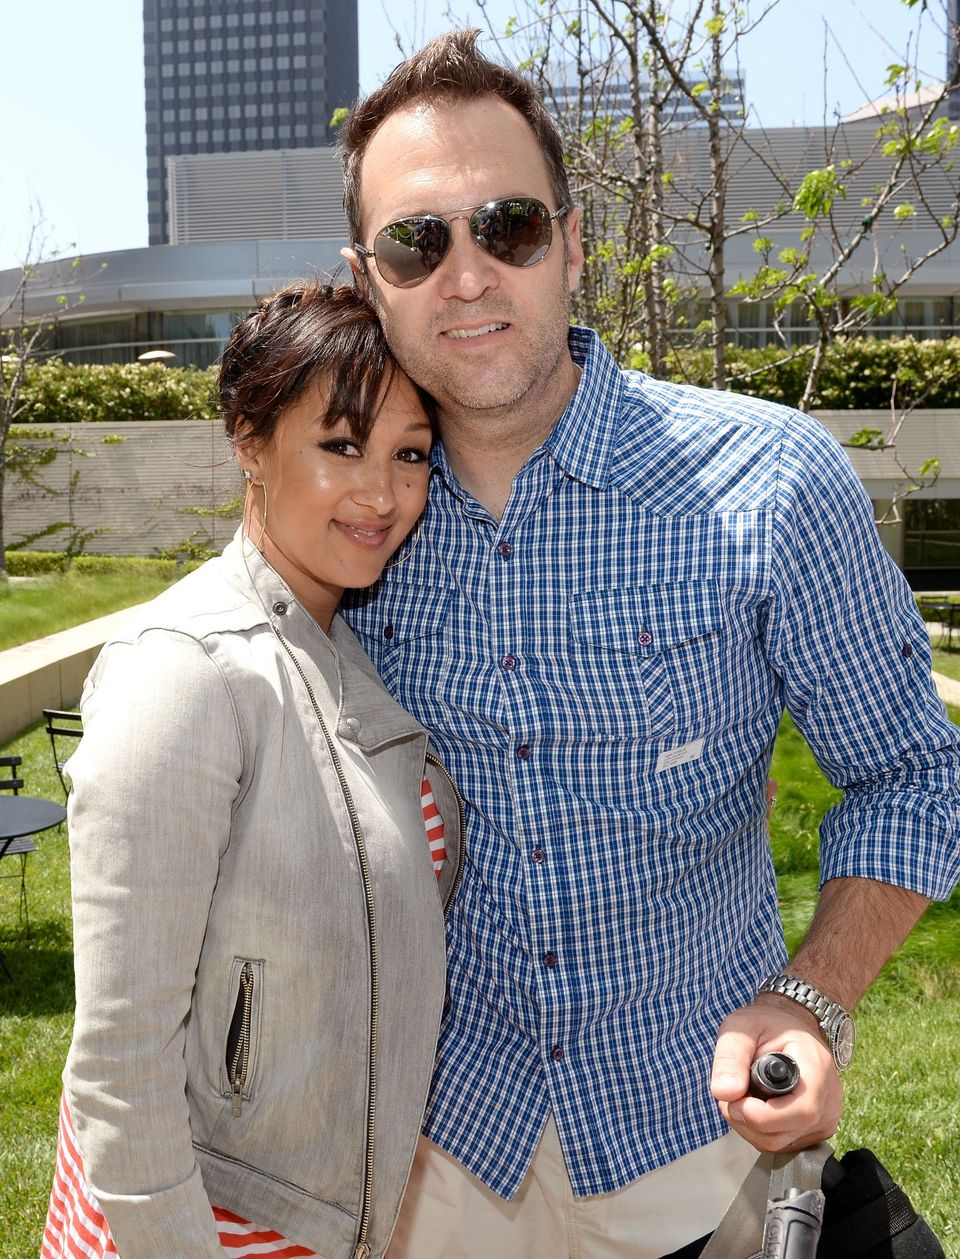 """Tamera Mowry-Housley and Adam Housley at the Elizabeth Glaser Pediatric AIDS Foundation's 24th Annual """"A Time For Heroes"""" at Century Park on June 2, 2013 in Los Angeles, California 